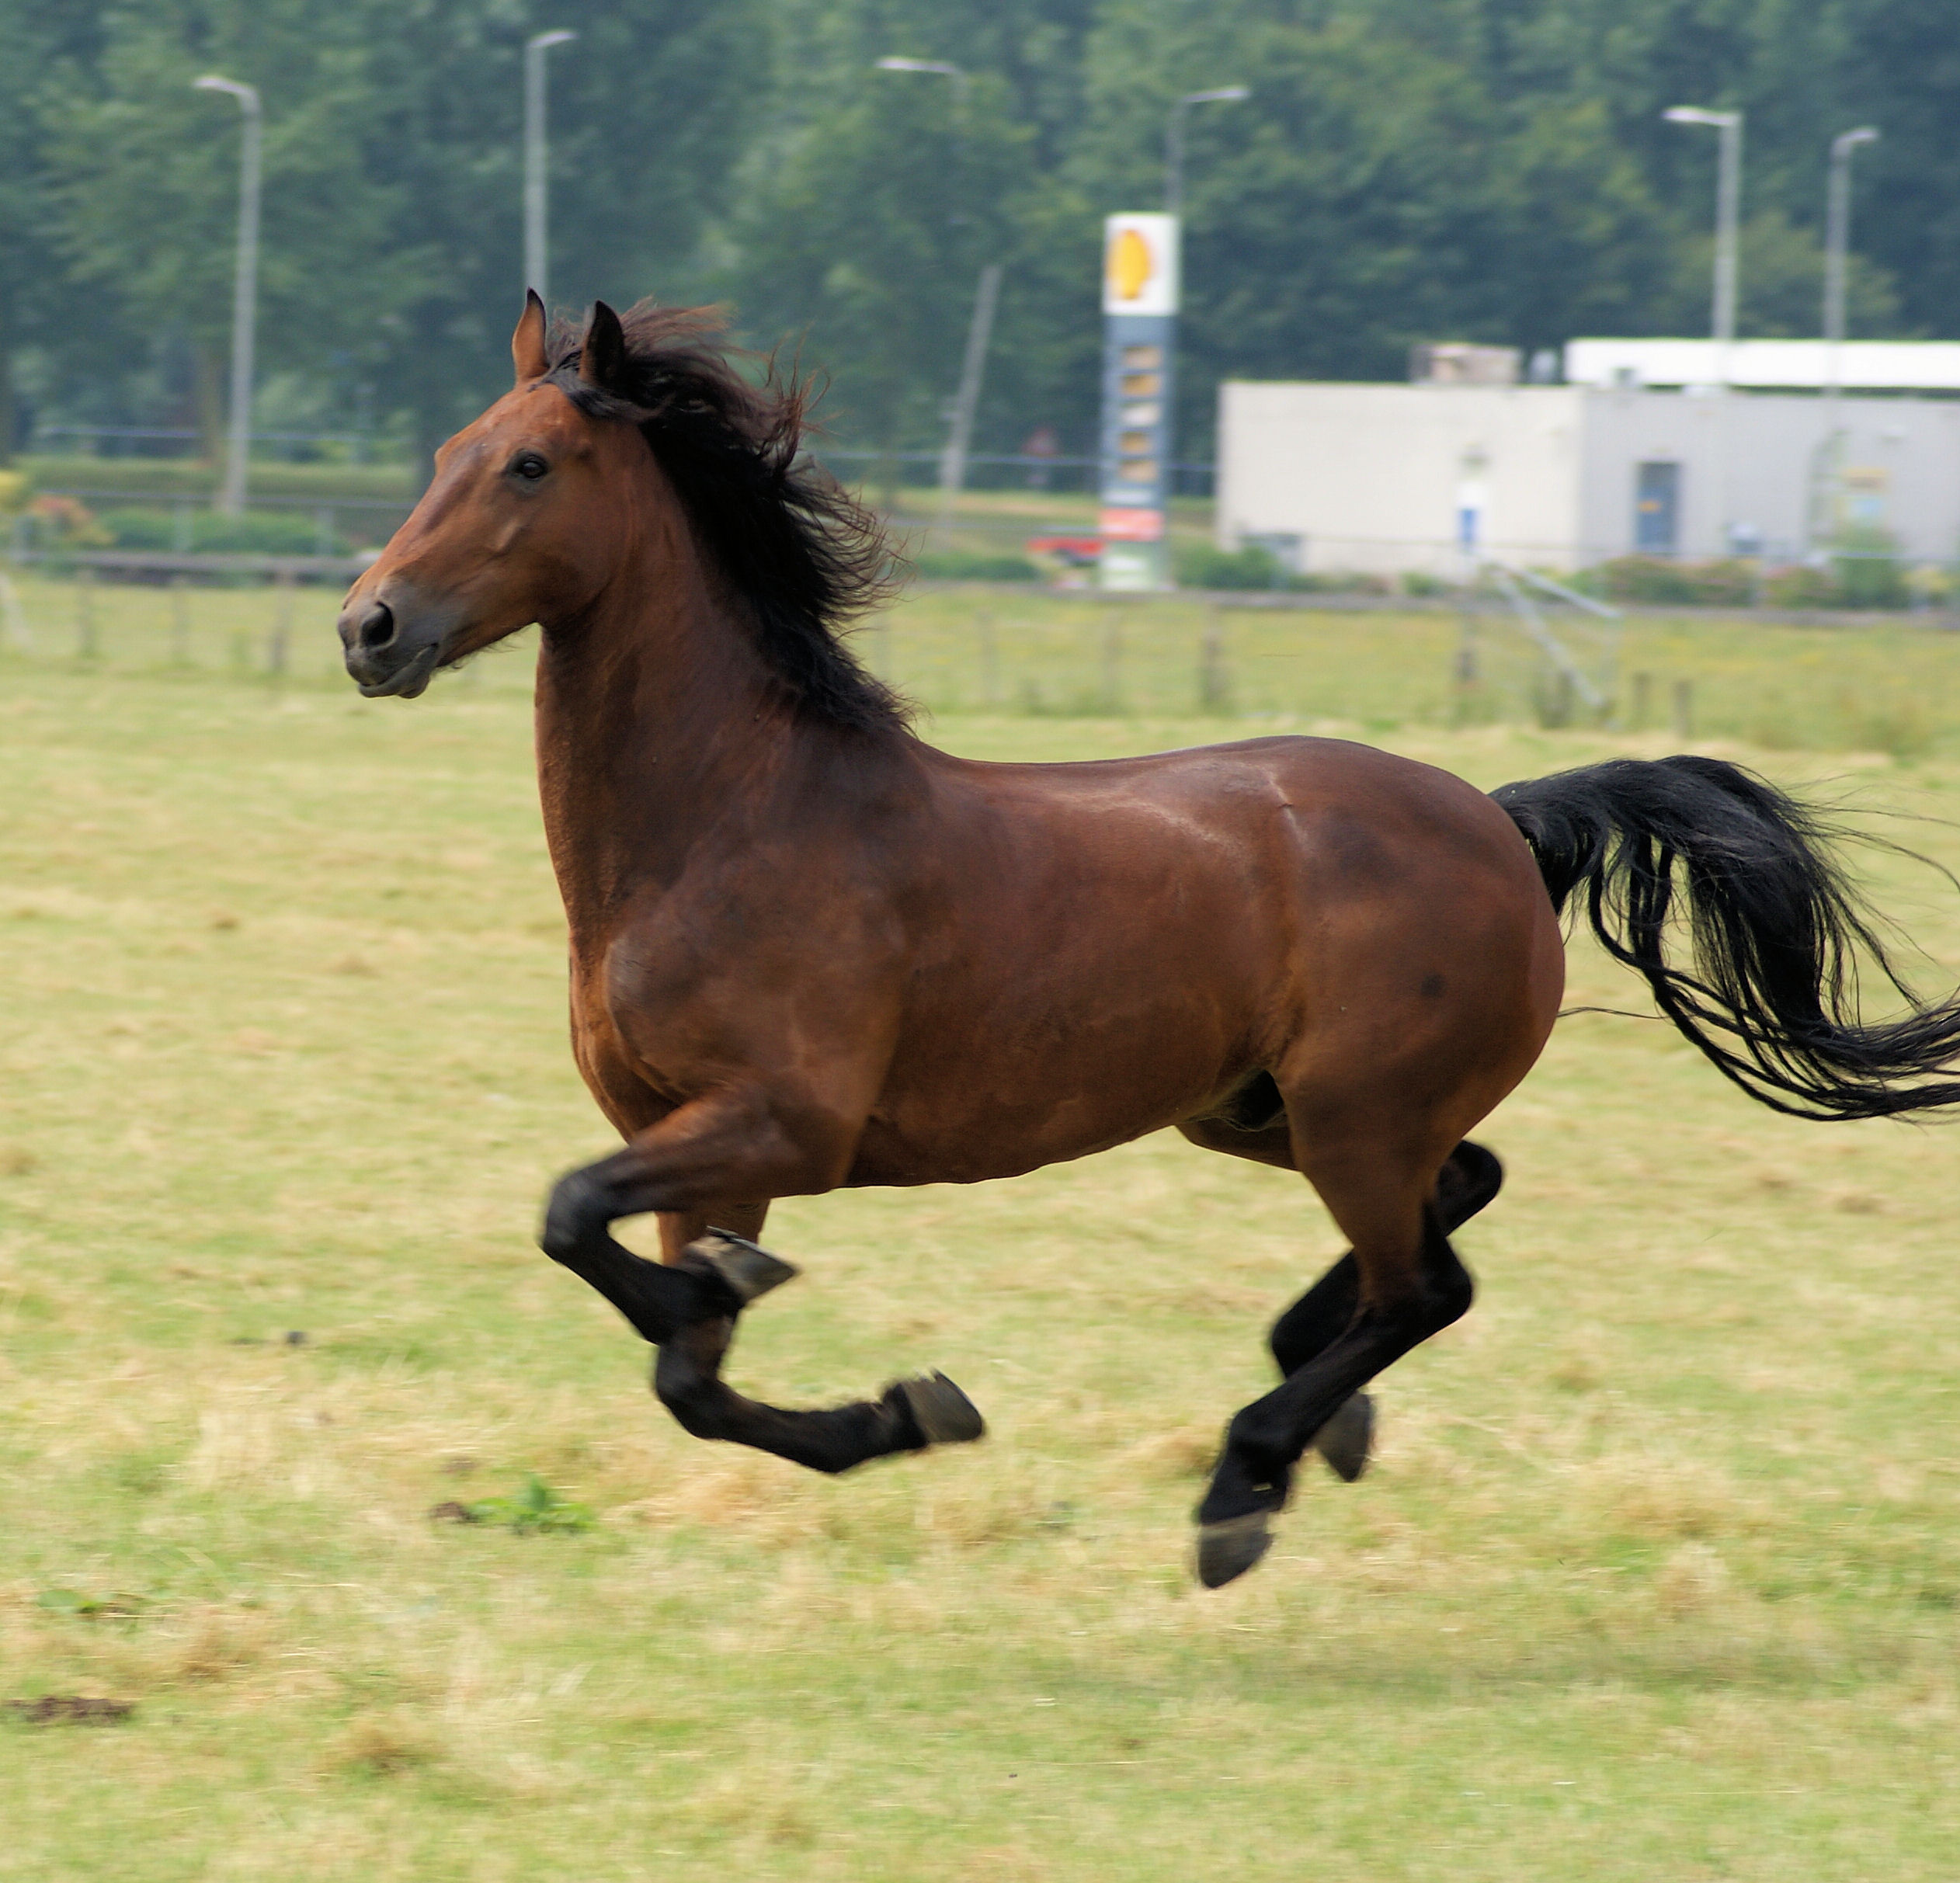 Horse in the netherlands photo